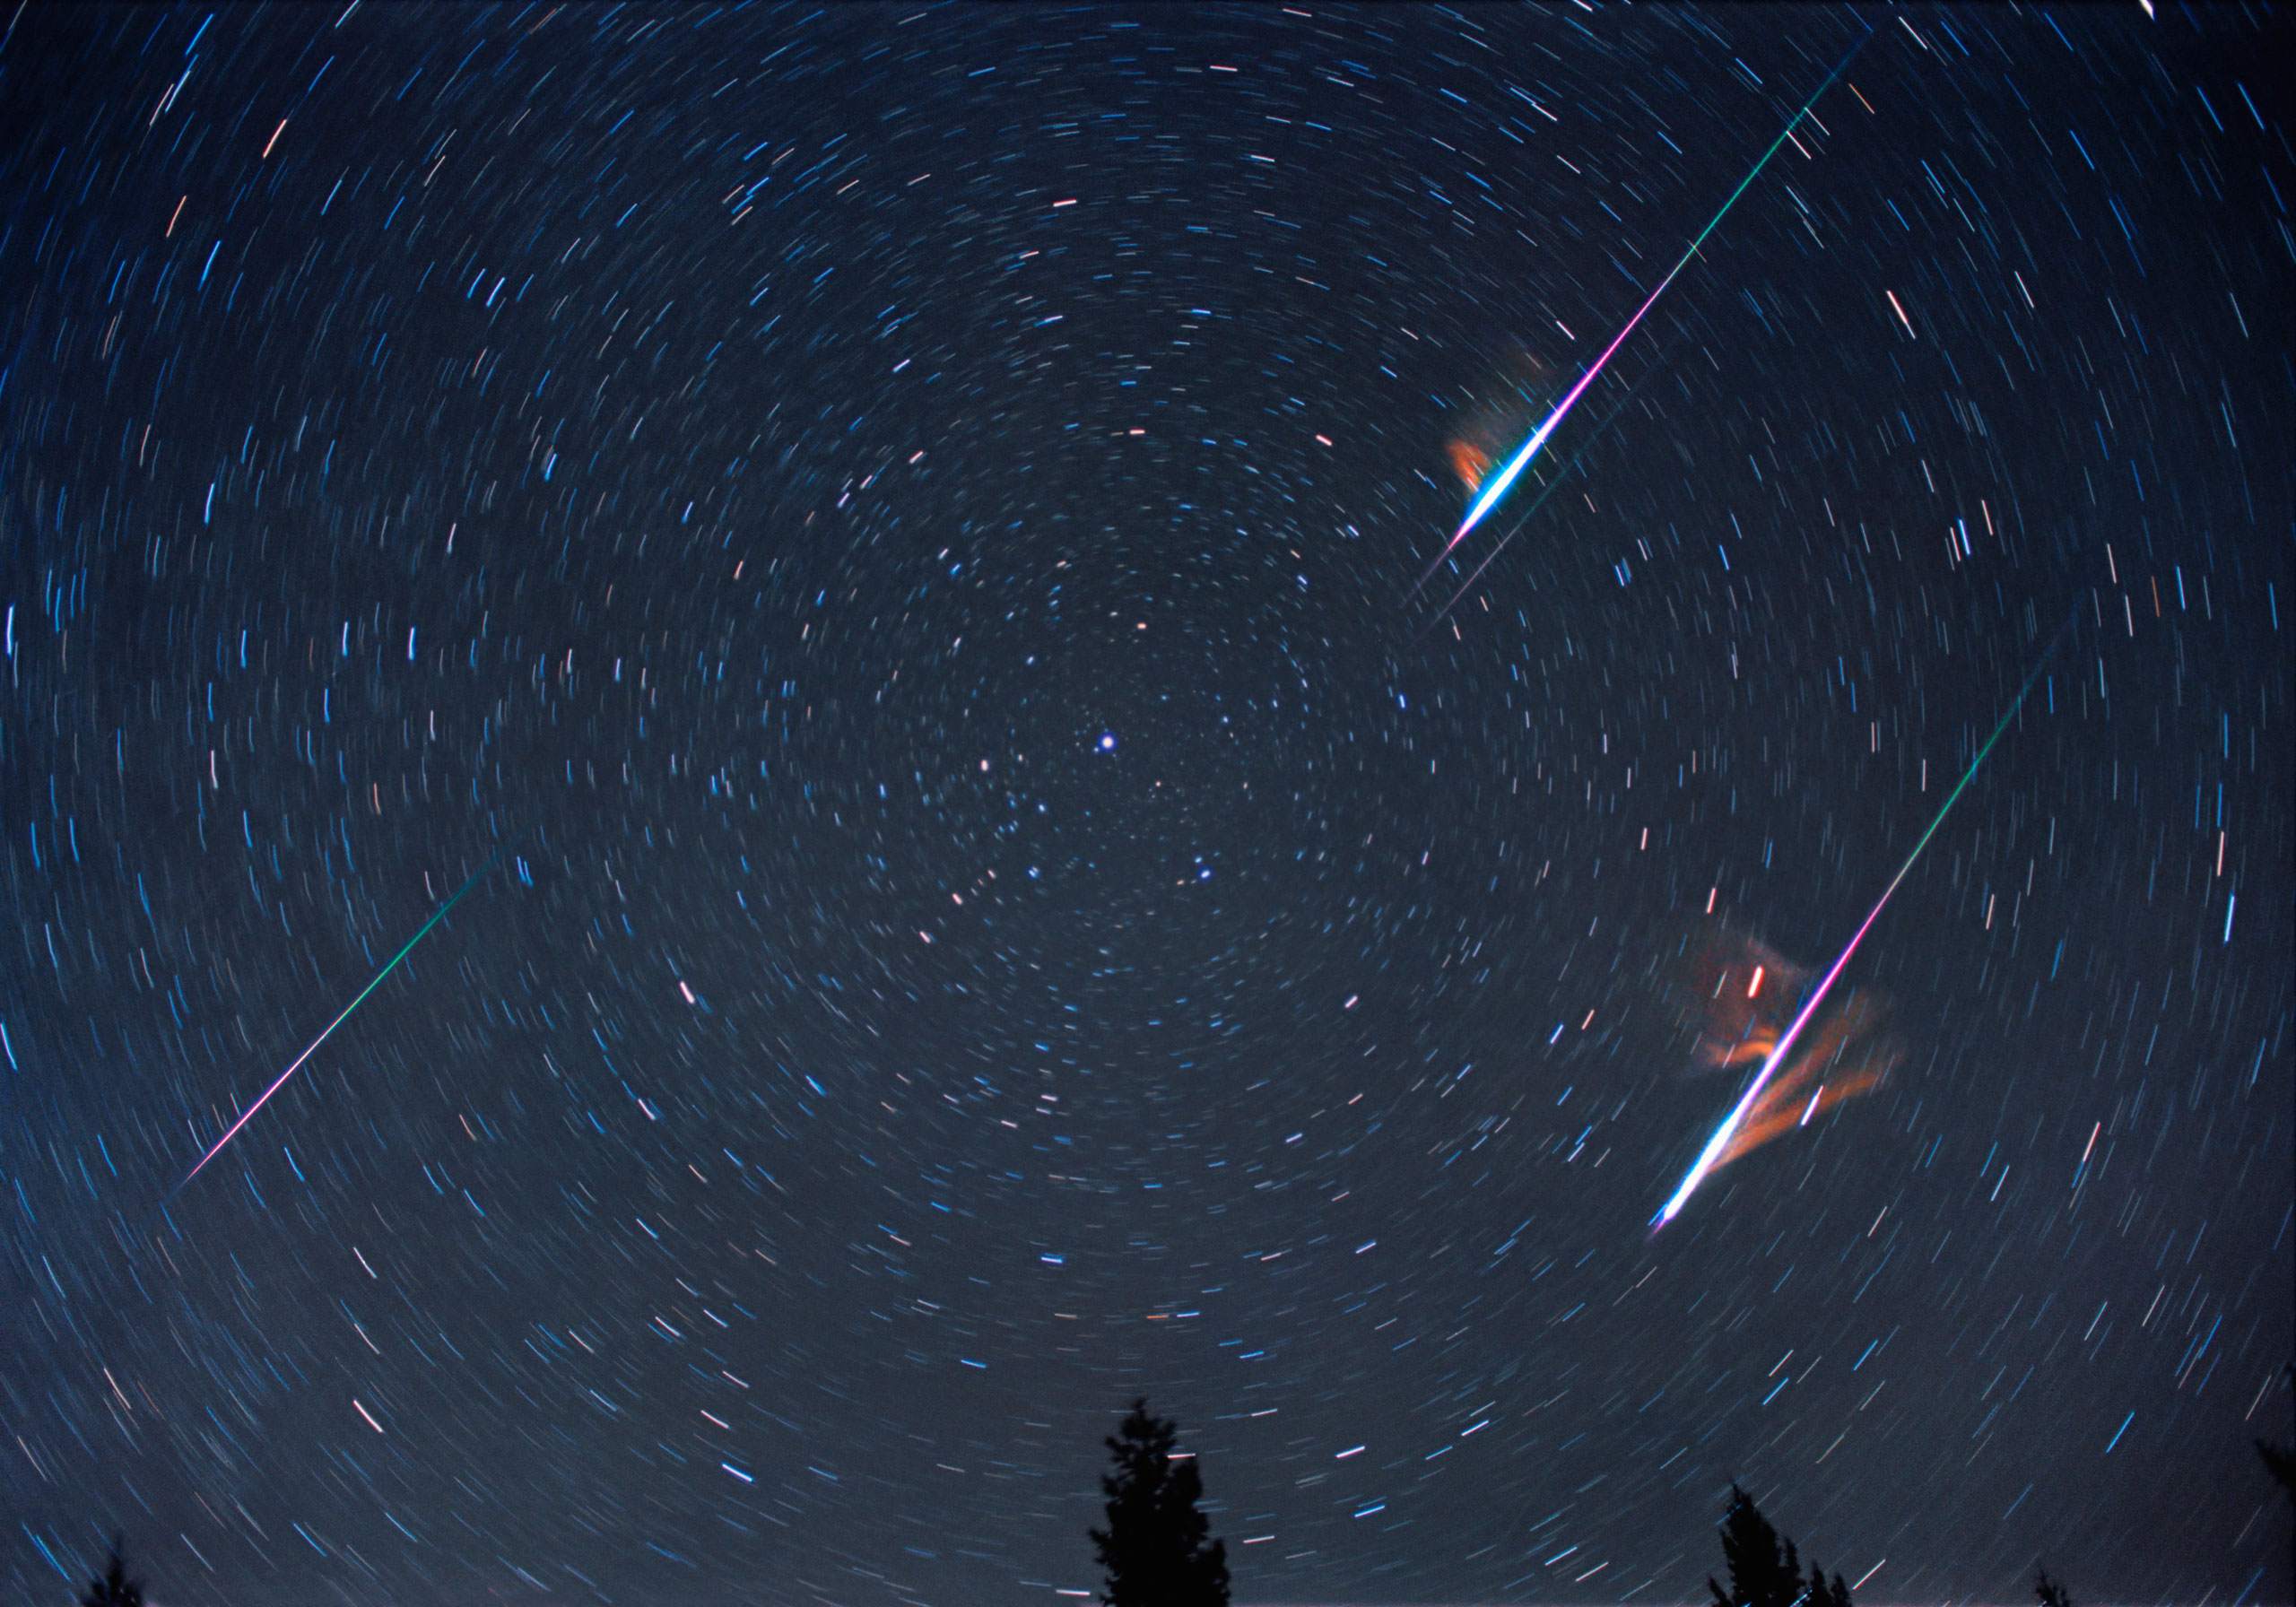 A Leonid meteor shower, centered on Polaris, the North Star. The smoky residue of the meteor trails have been blown by upper atmospheric wind. The color shift is due to the meteoroid burning.